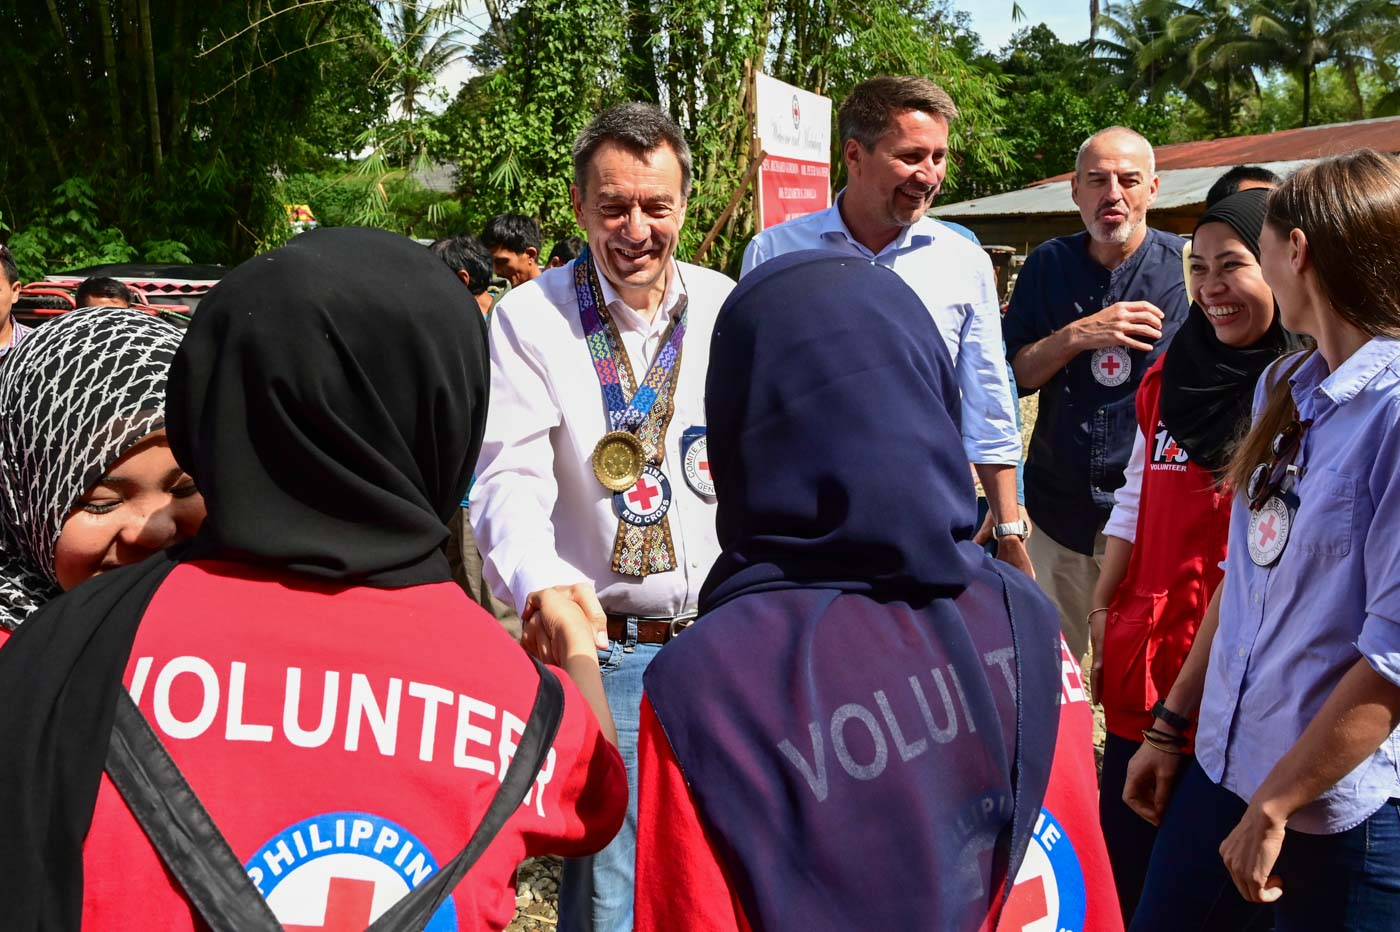 WELCOME. ICRC President Peter Maurer with ICRC Regional Director Boris Michel, ICRC Head of Delegation Martin Thalmann, and ICRC Sub-delegation Head Roberto Petronio are welcomed by PRC staff and volunteers at the Bualan Spring Project in Lanao Del Sur on June 3, 2019. All photos by Alecs Ongcal/ICRC